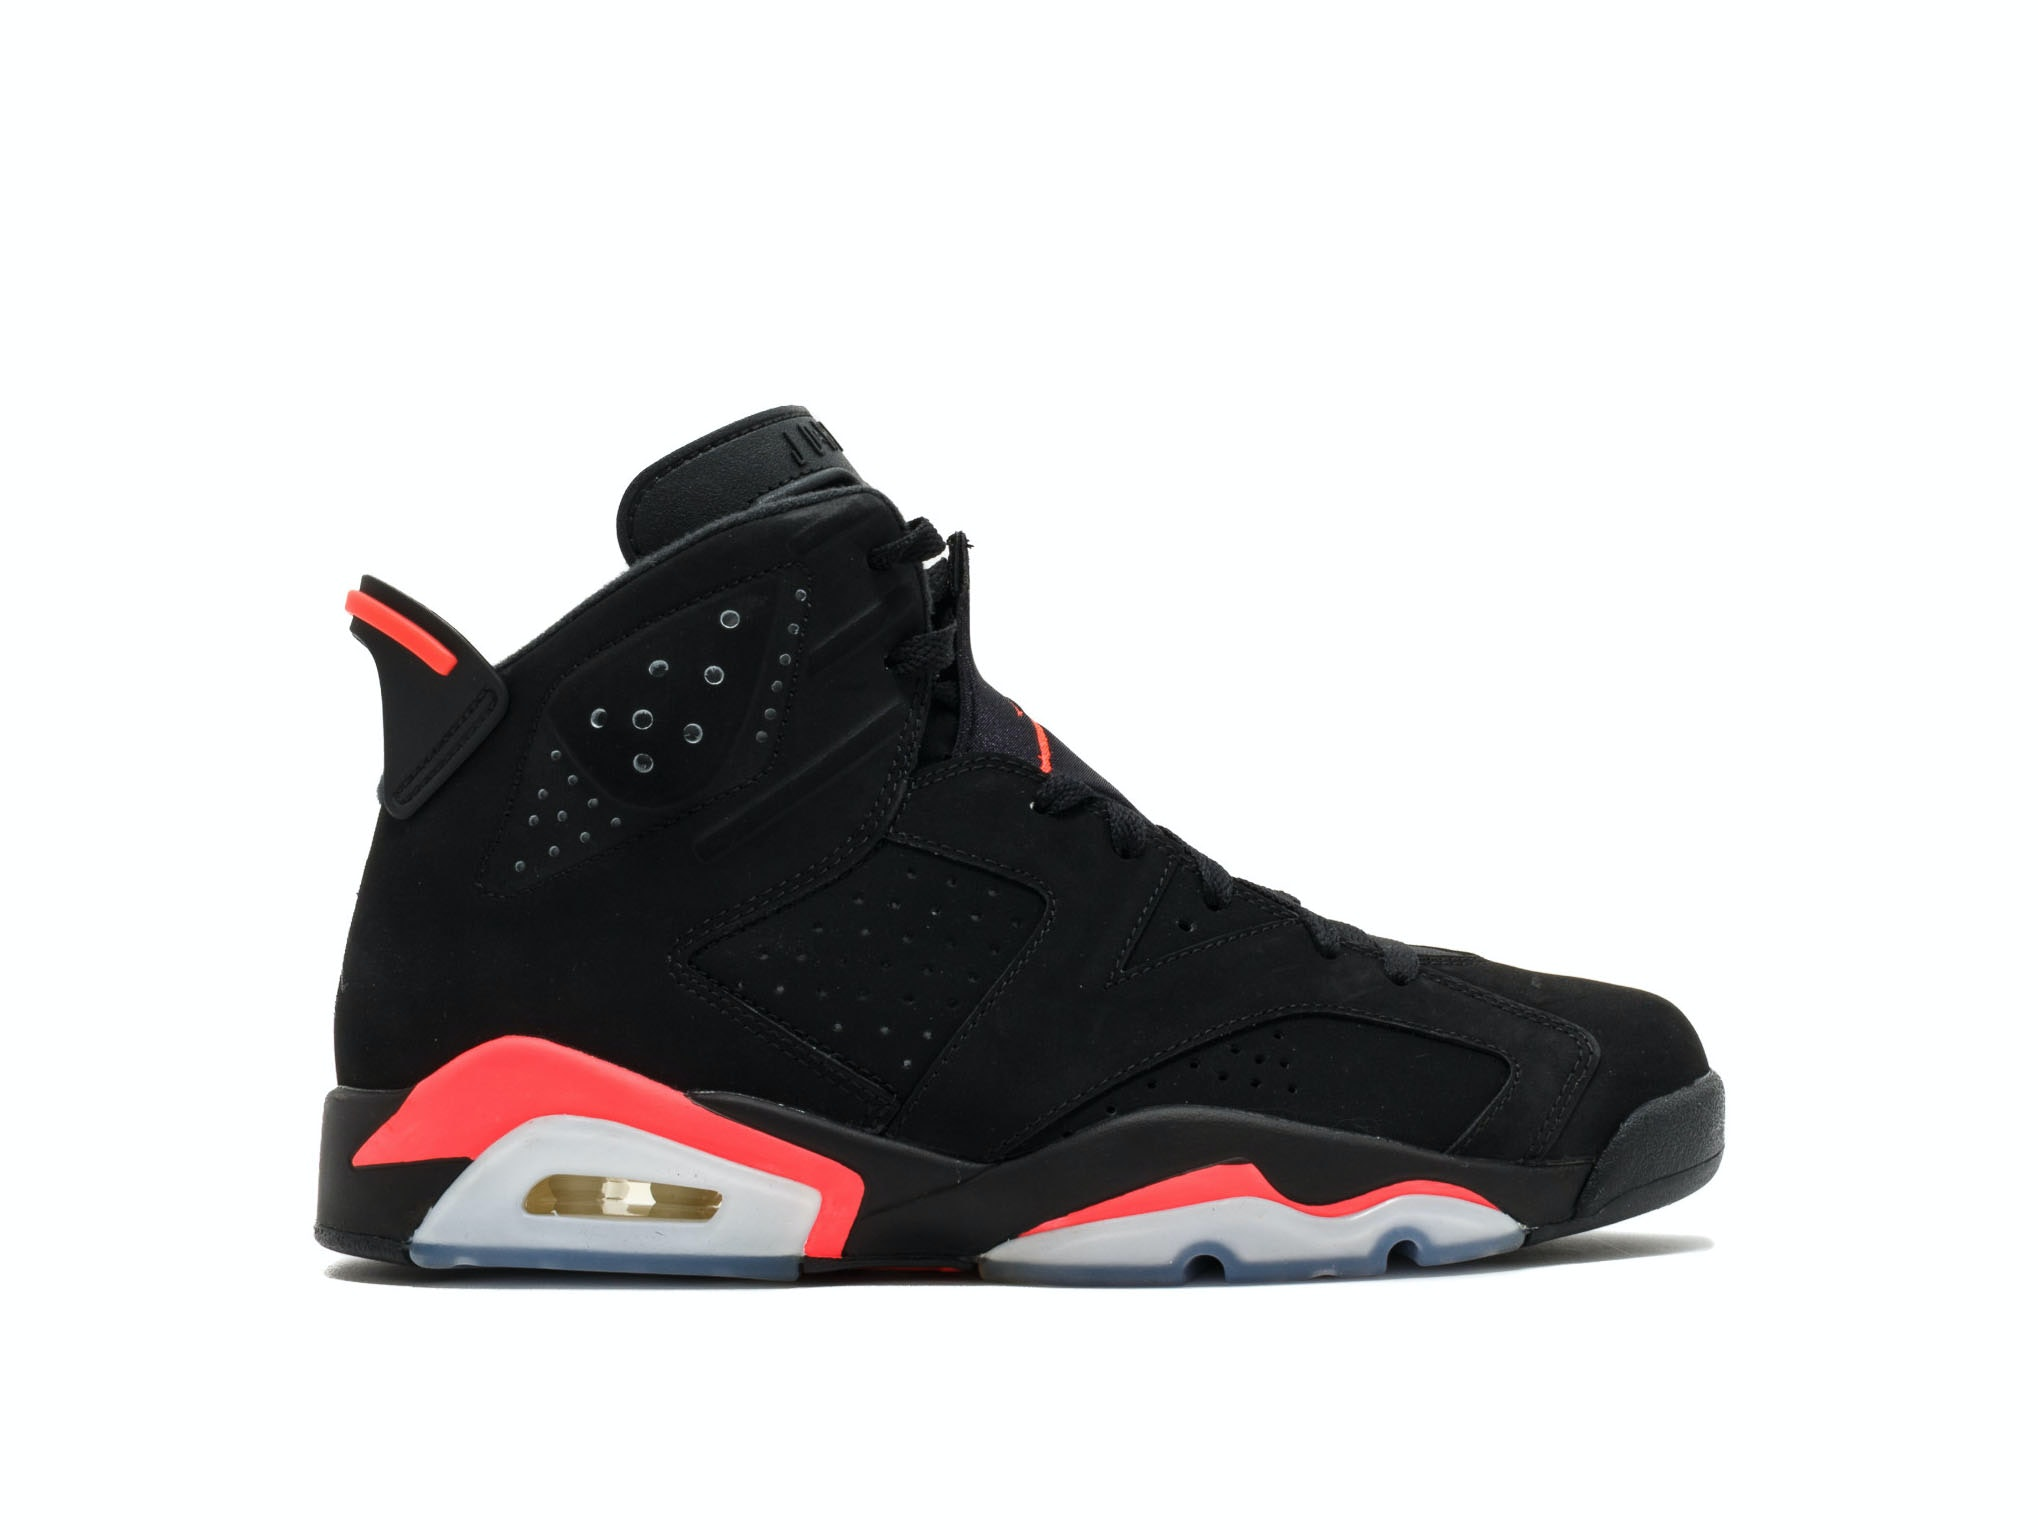 0e64f312818aa8 Shop Air Jordan 6 Retro Infared Black 2014 Online